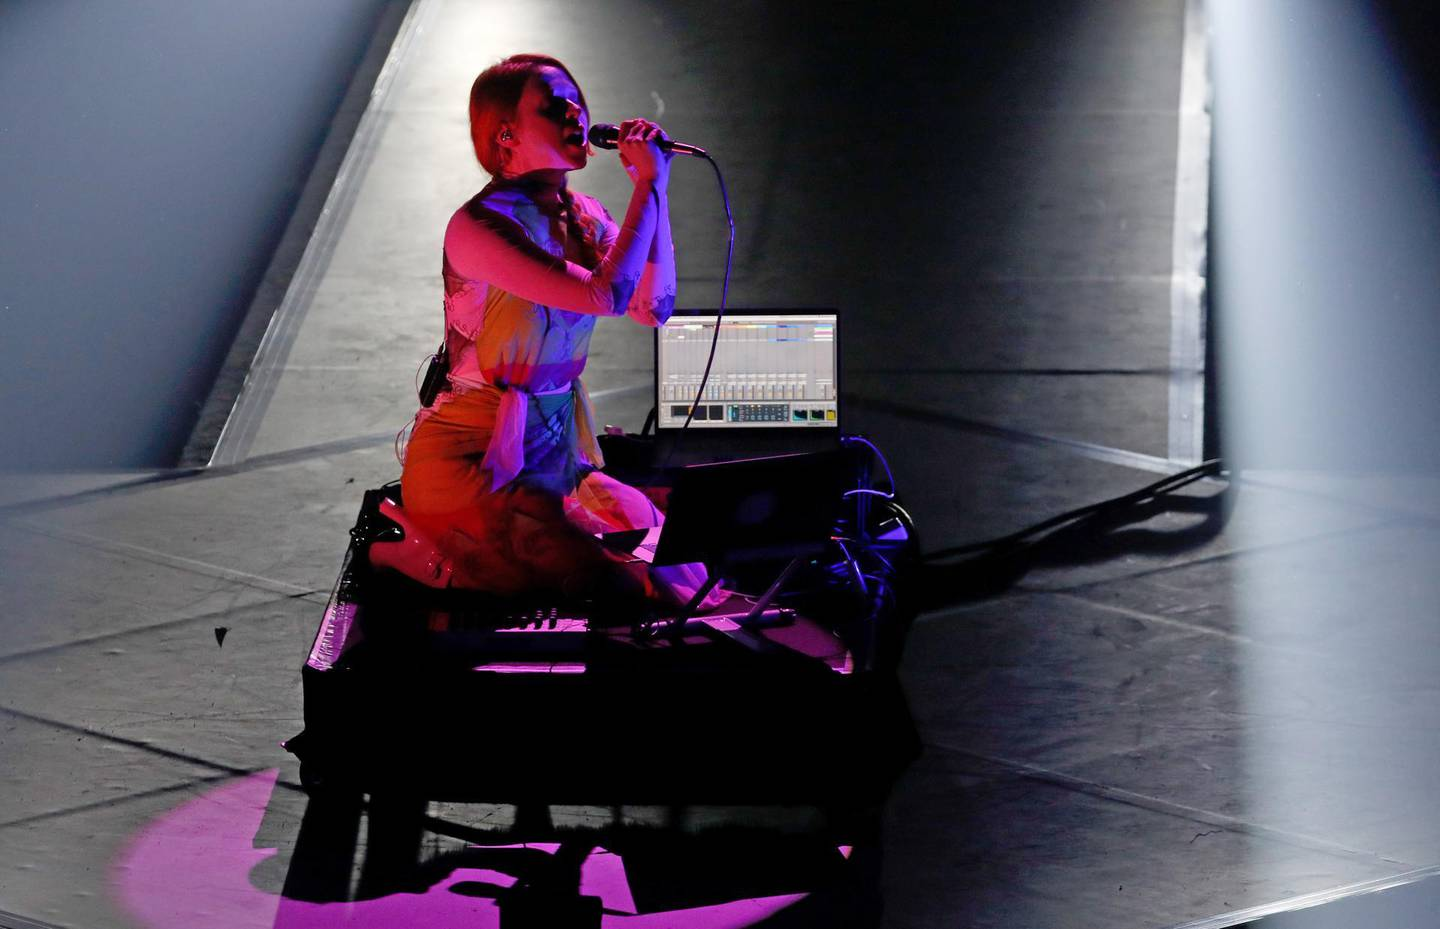 BERLIN, GERMANY - NOVEMBER 22: US musician Holly Herndon performs during the International Music Award (IMA) 2019 in Berlin, Germany, 22 November 2019. The IMA recognizes the efforts of artists to share their work with a statement independently of the commercial success.  (Photo by Felipe Trueba - Pool/Getty Images)